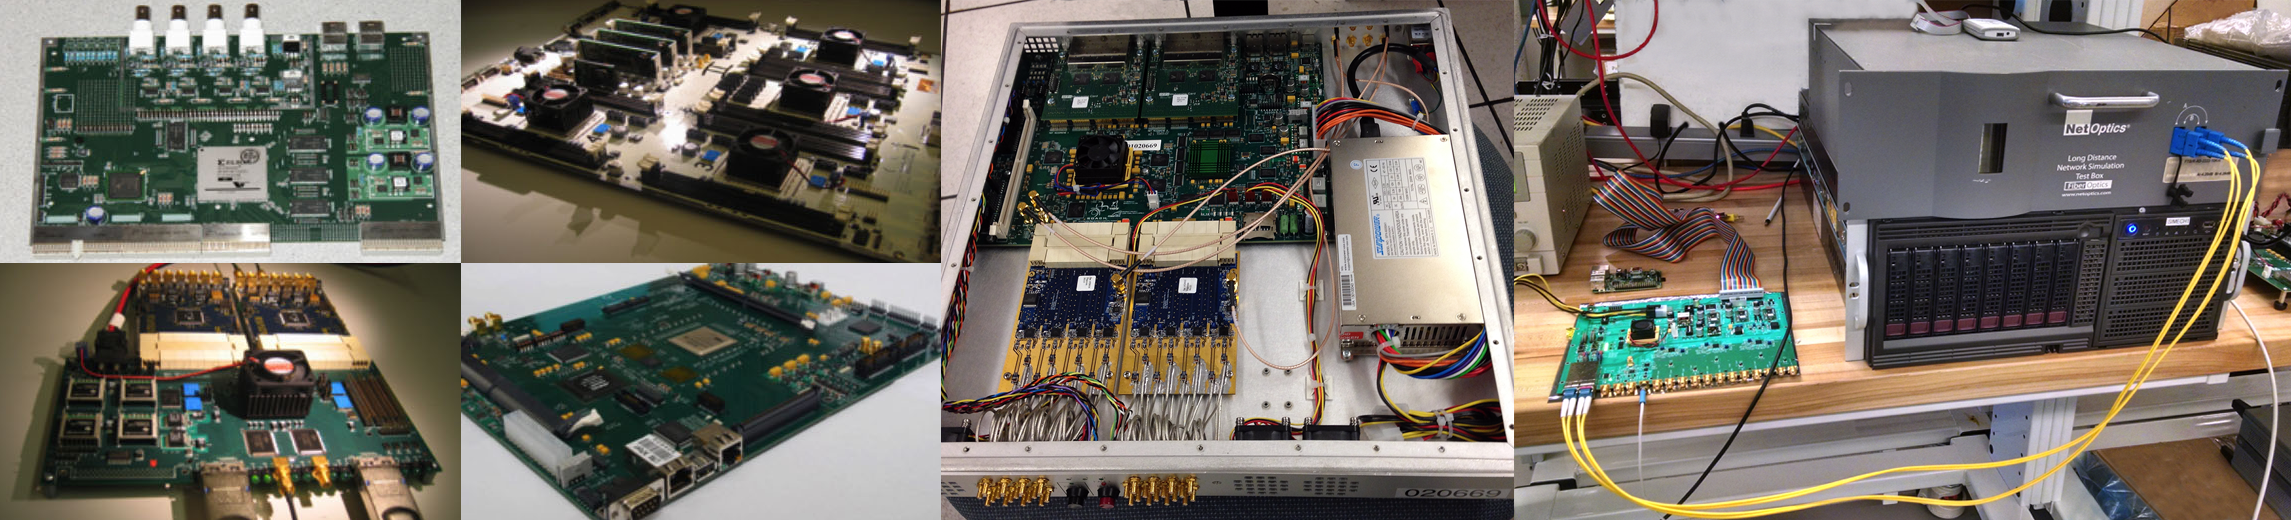 Technical Design Electrical Wiring Board Six Generations Of Casper Digital Signal Processing Left To Right Culminating In The Snap Along With Long Haul Fiber Link Test Setup